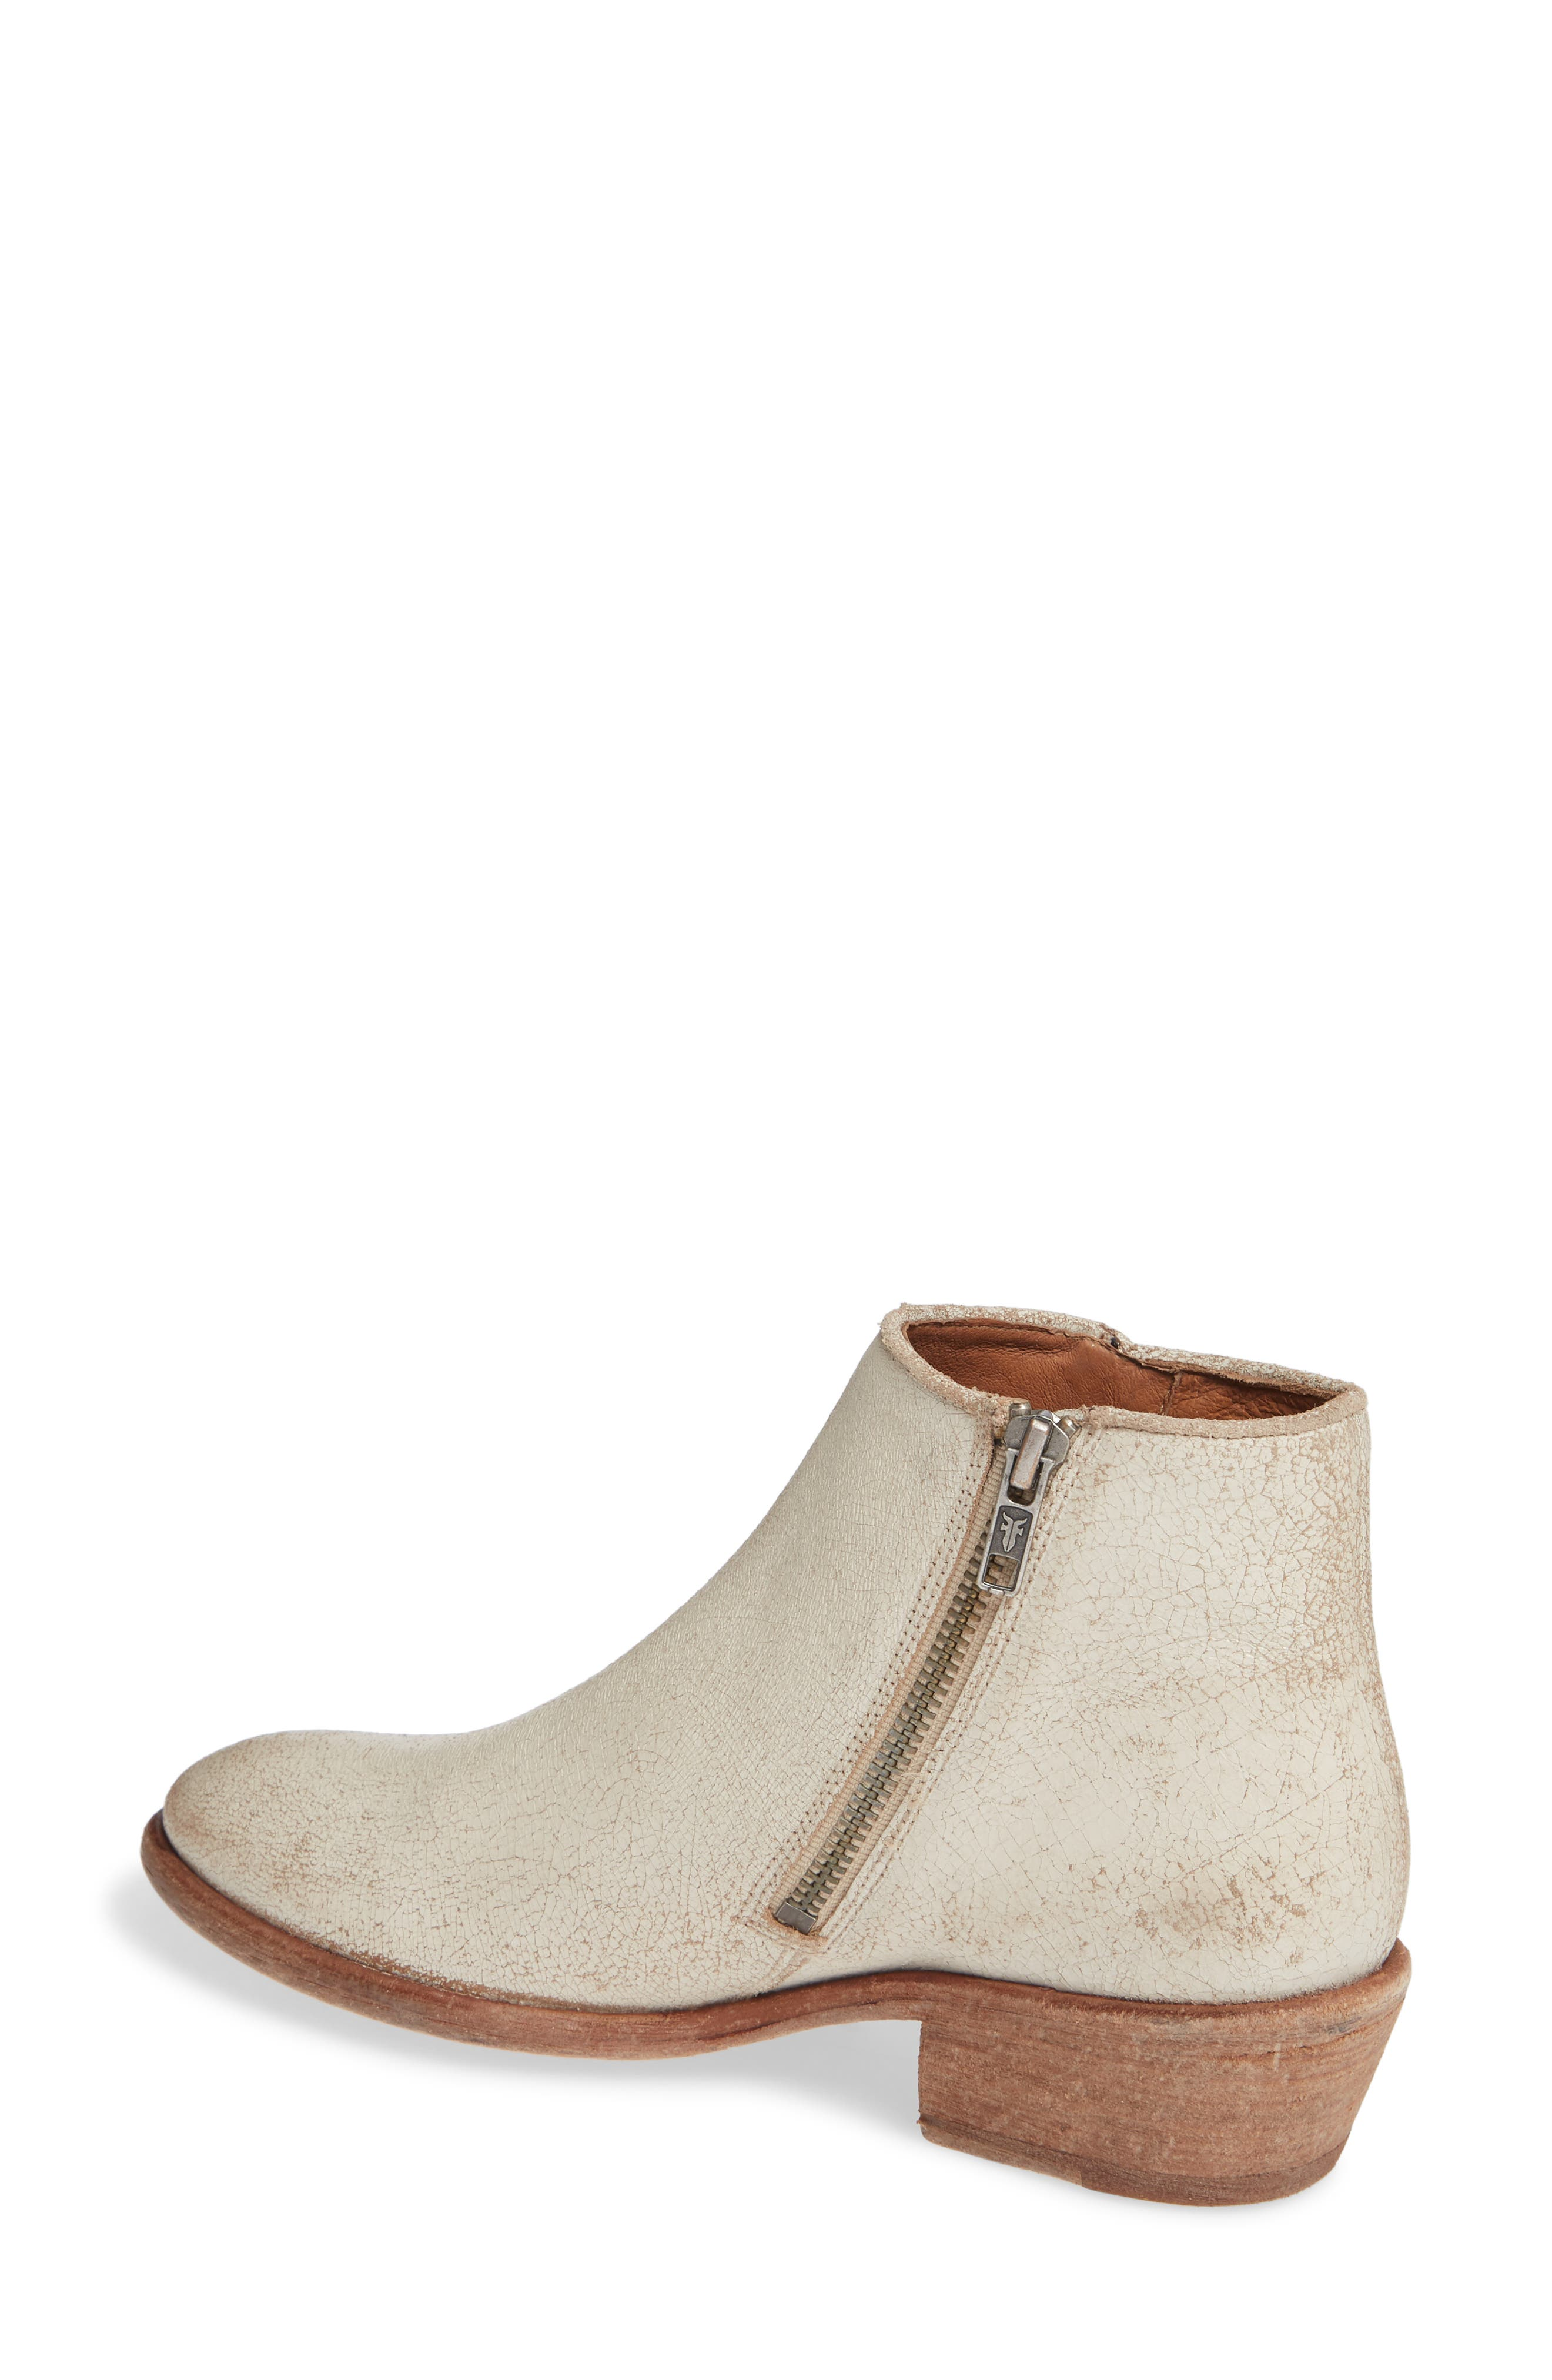 Carson Piping Bootie,                             Alternate thumbnail 2, color,                             900